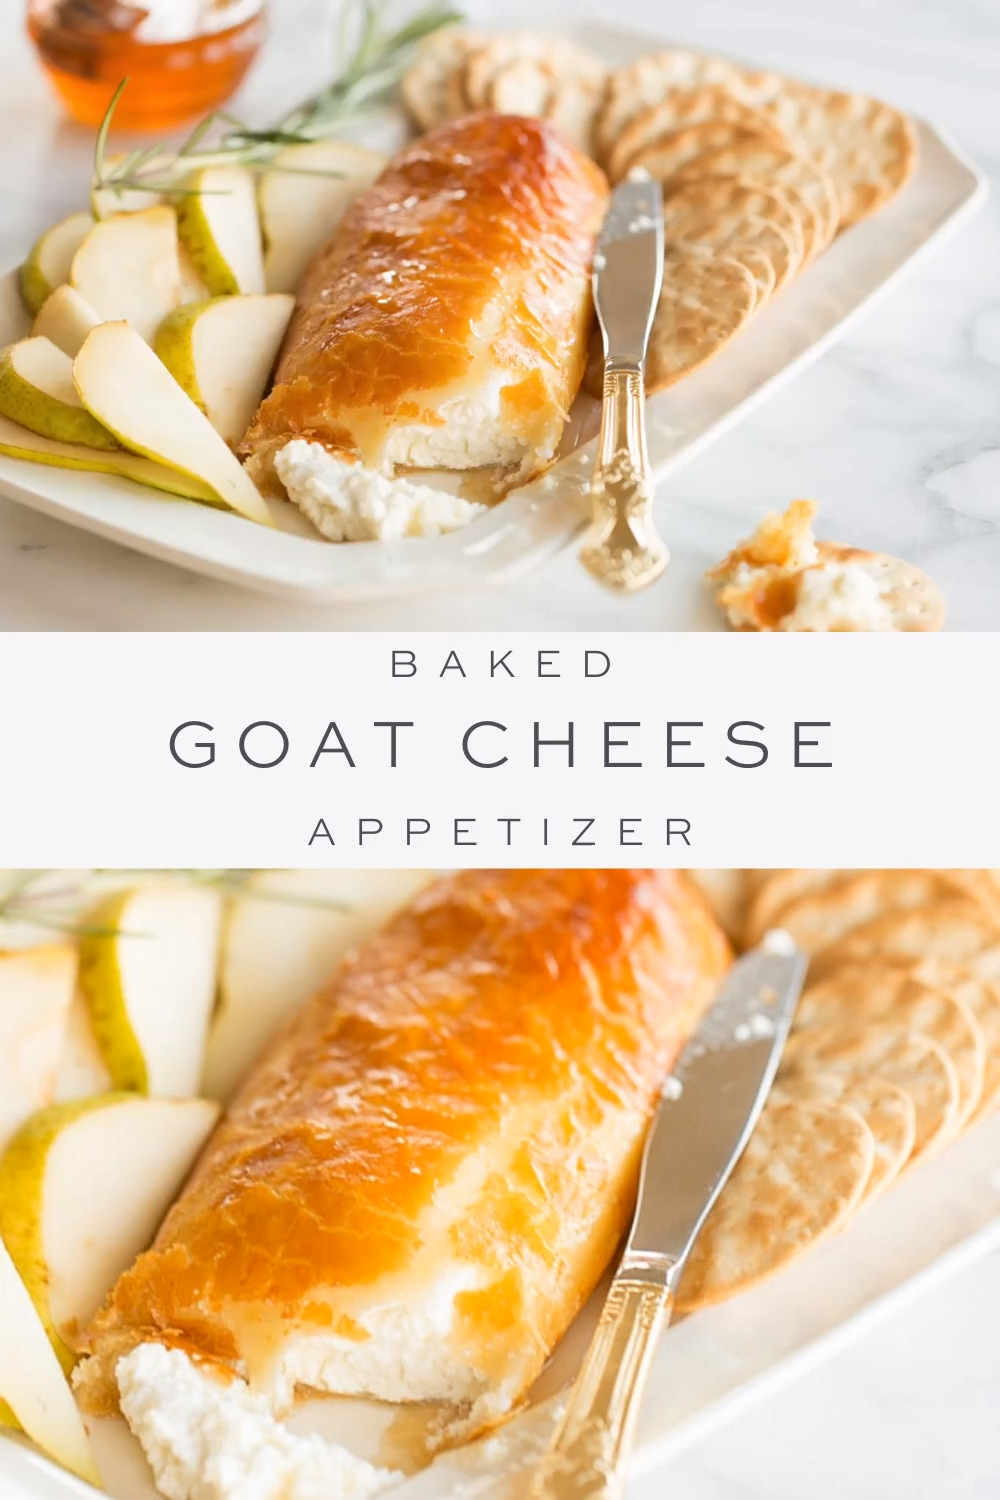 Easy Baked Goat Cheese and Honey Appetizer -   23 thanksgiving recipes videos appetizers desserts ideas